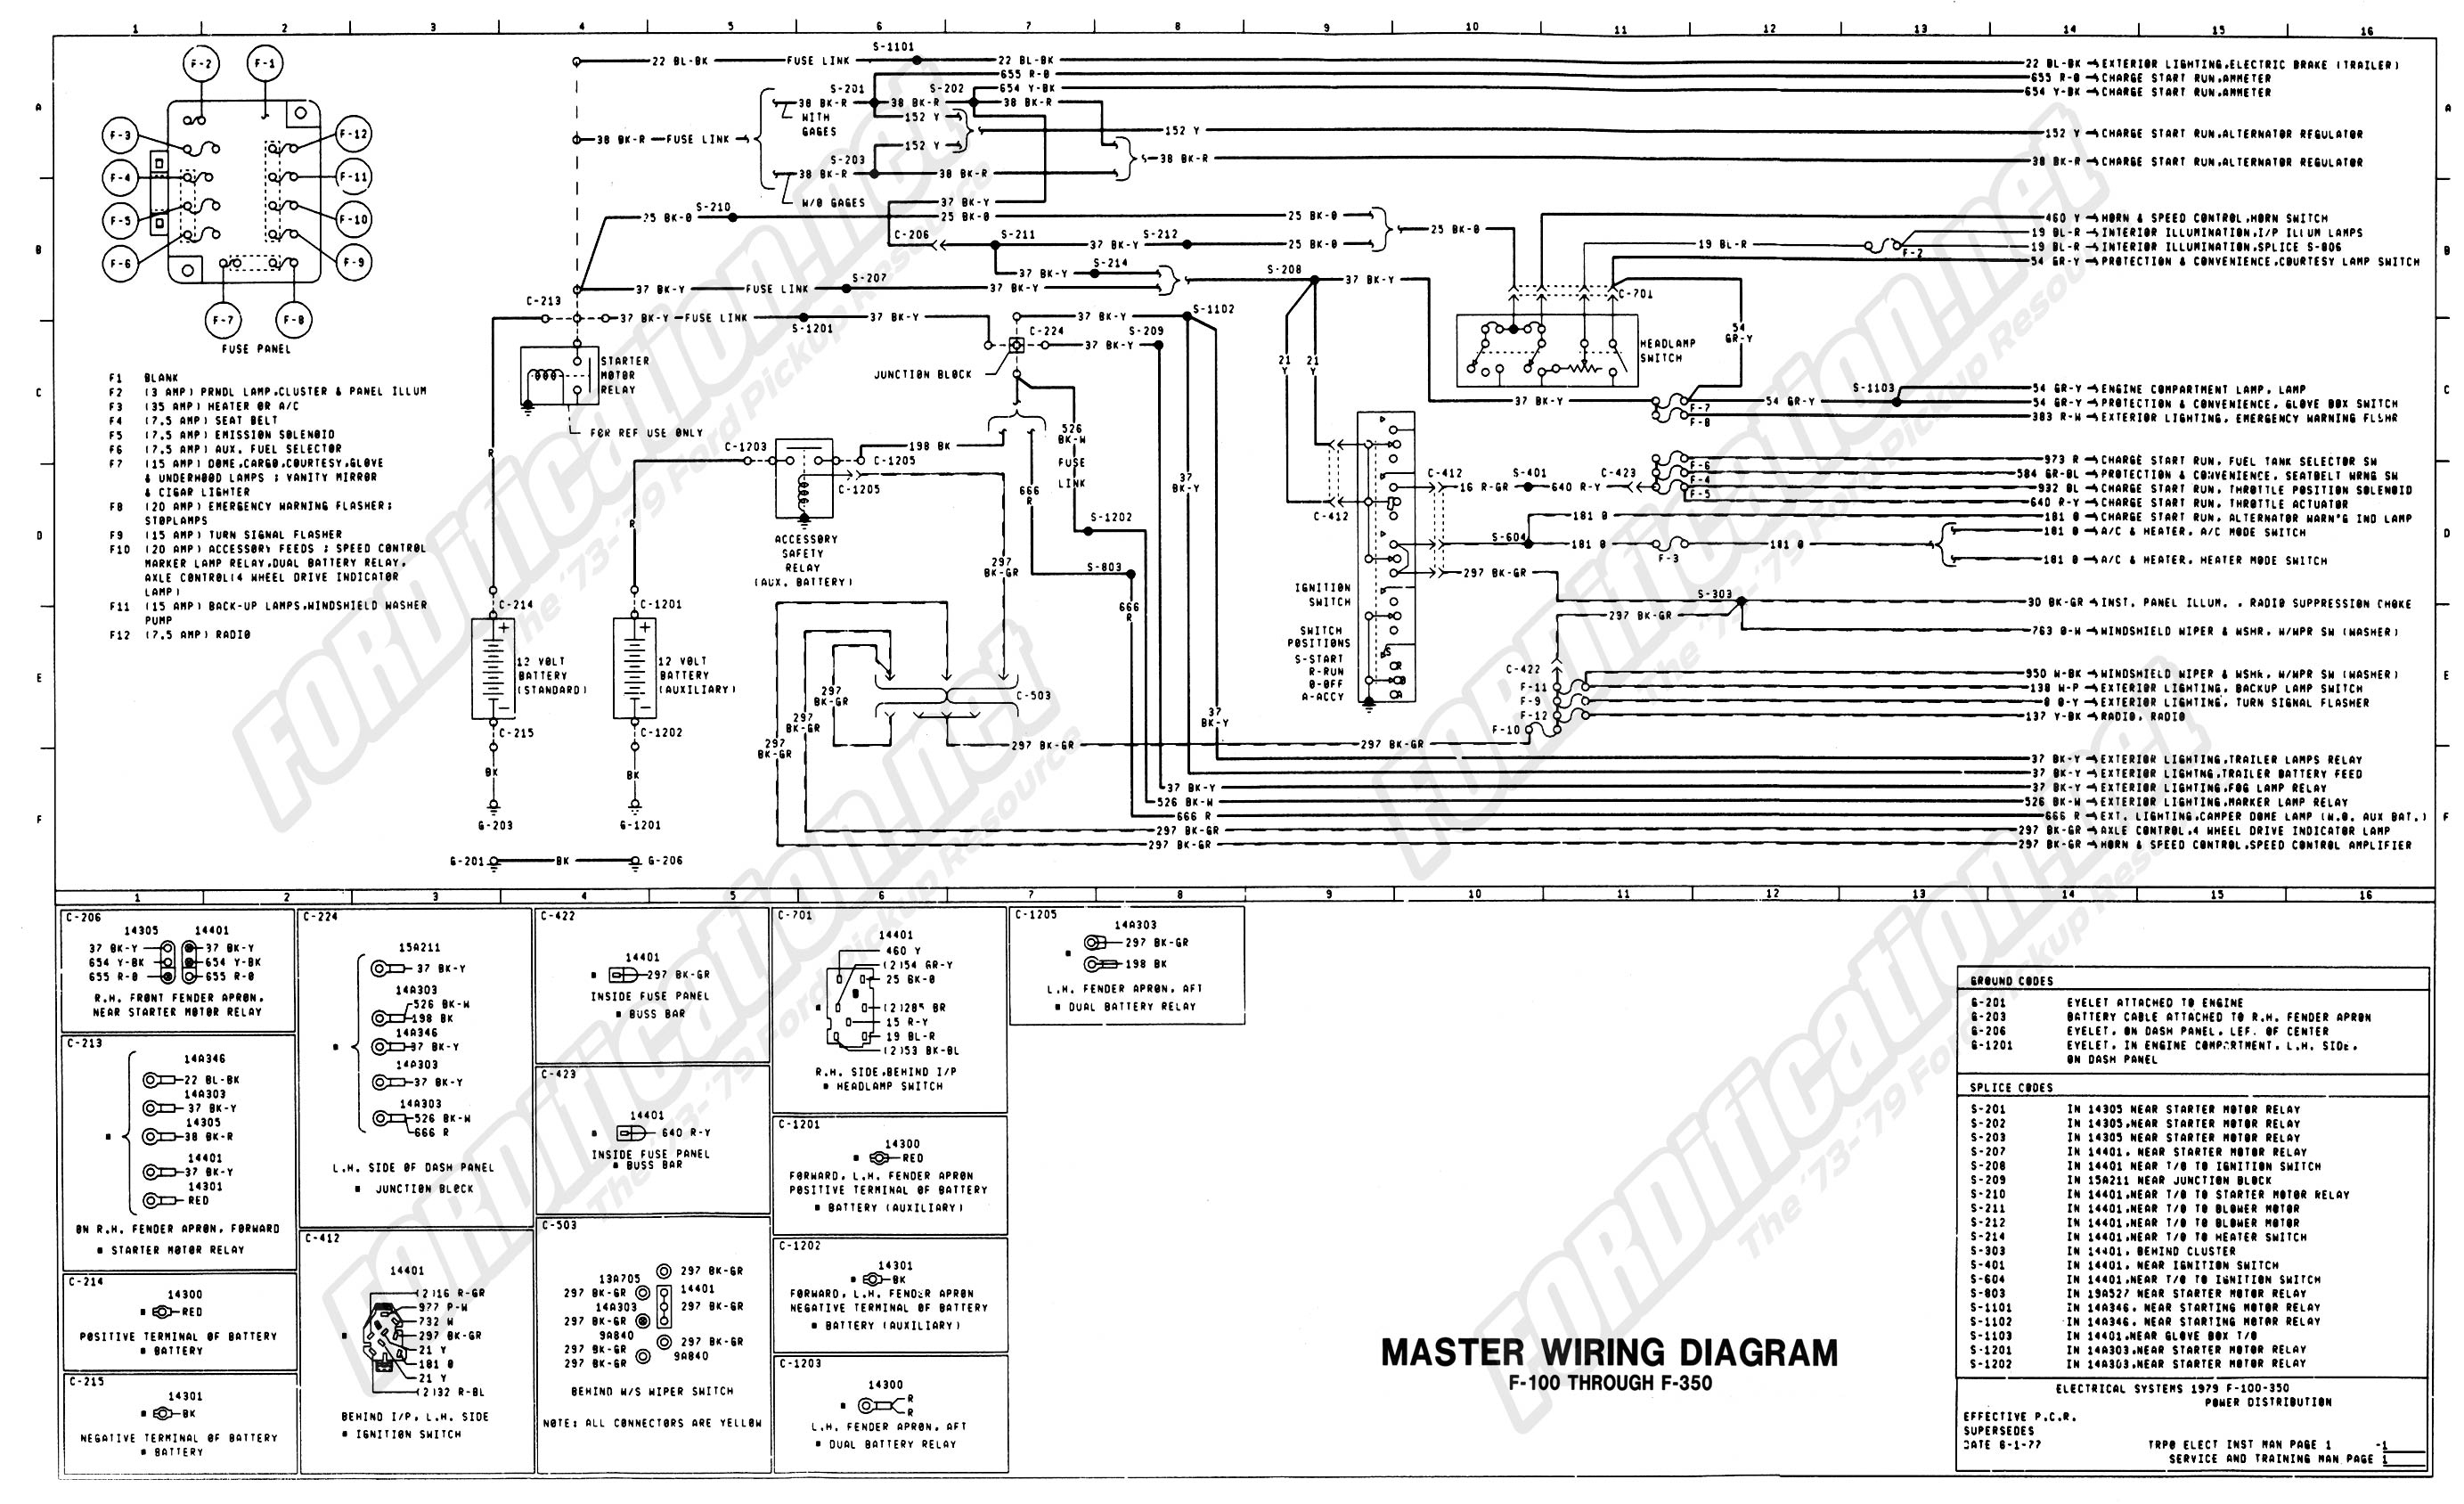 1987 ford f150 wiring diagram Collection-wiring 79master 1of9 17-i